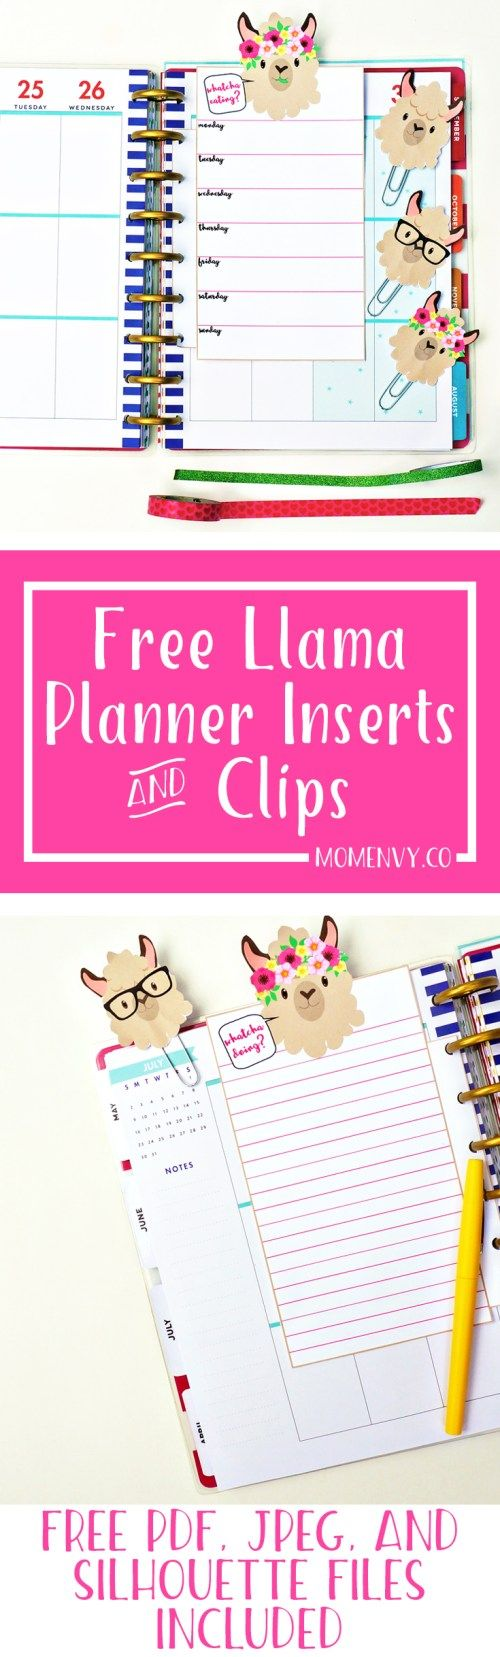 Llama Planner Inserts and Clips. Download free llama planner inserts and clips perfect for any size planner. Menu planner insert, lined paper, and more. #planning #planners #llamas